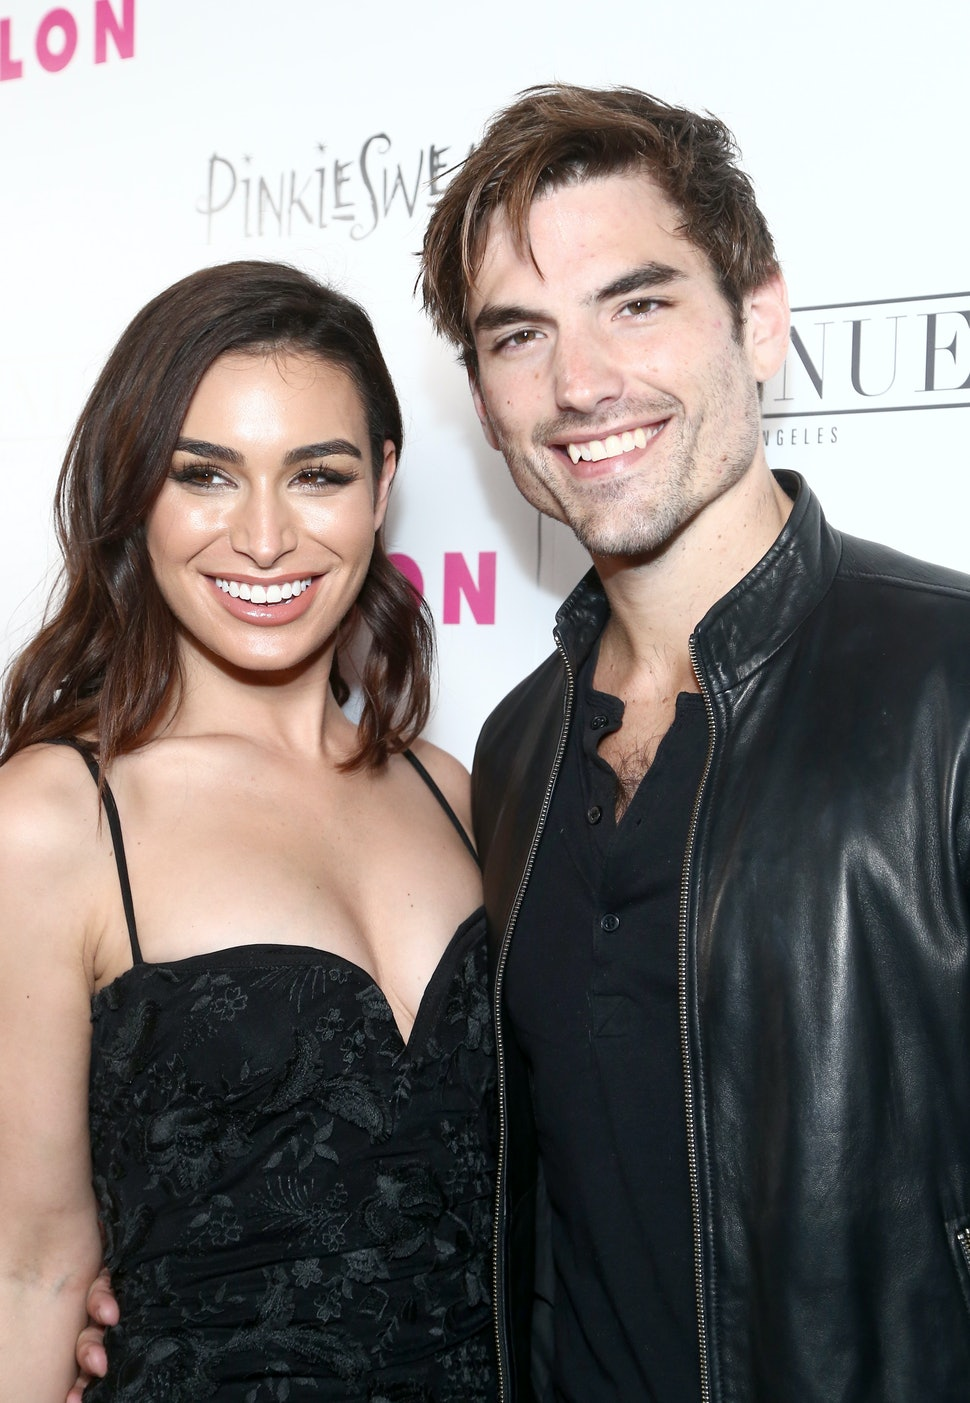 Bachelor Nations Ashley Iaconetti Jared Haibon Are Engaged Its A Match Made In Paradise